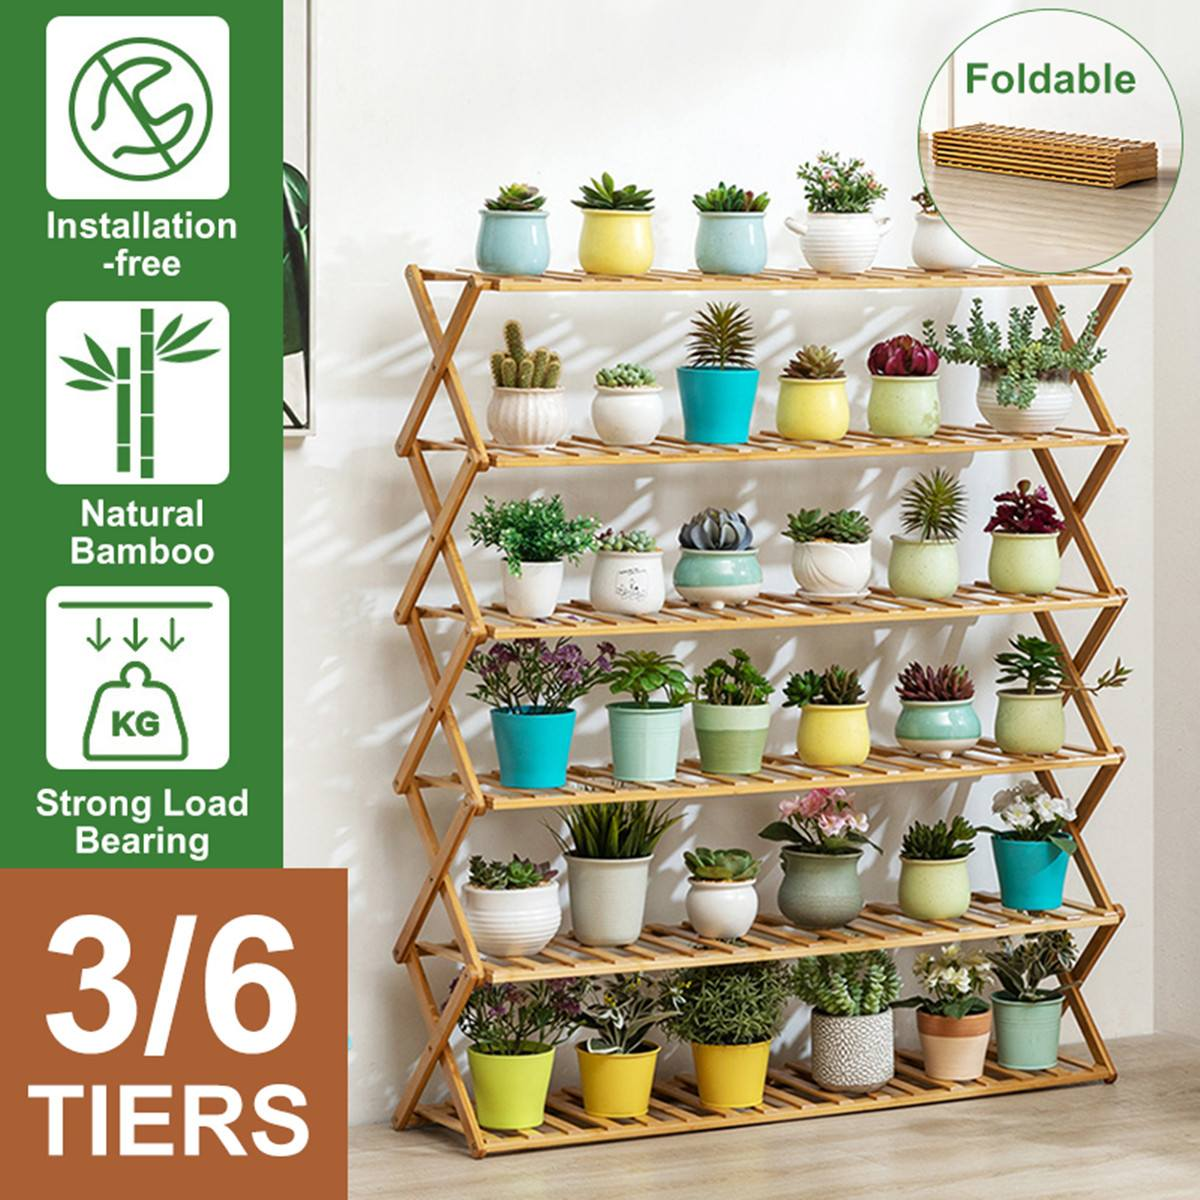 6 Tiers Wooden Flower Rack Plant Stand Multi Flower Stand Shelves Bonsai Display Shelf Yard Garden Patio Balcony Floral Stands